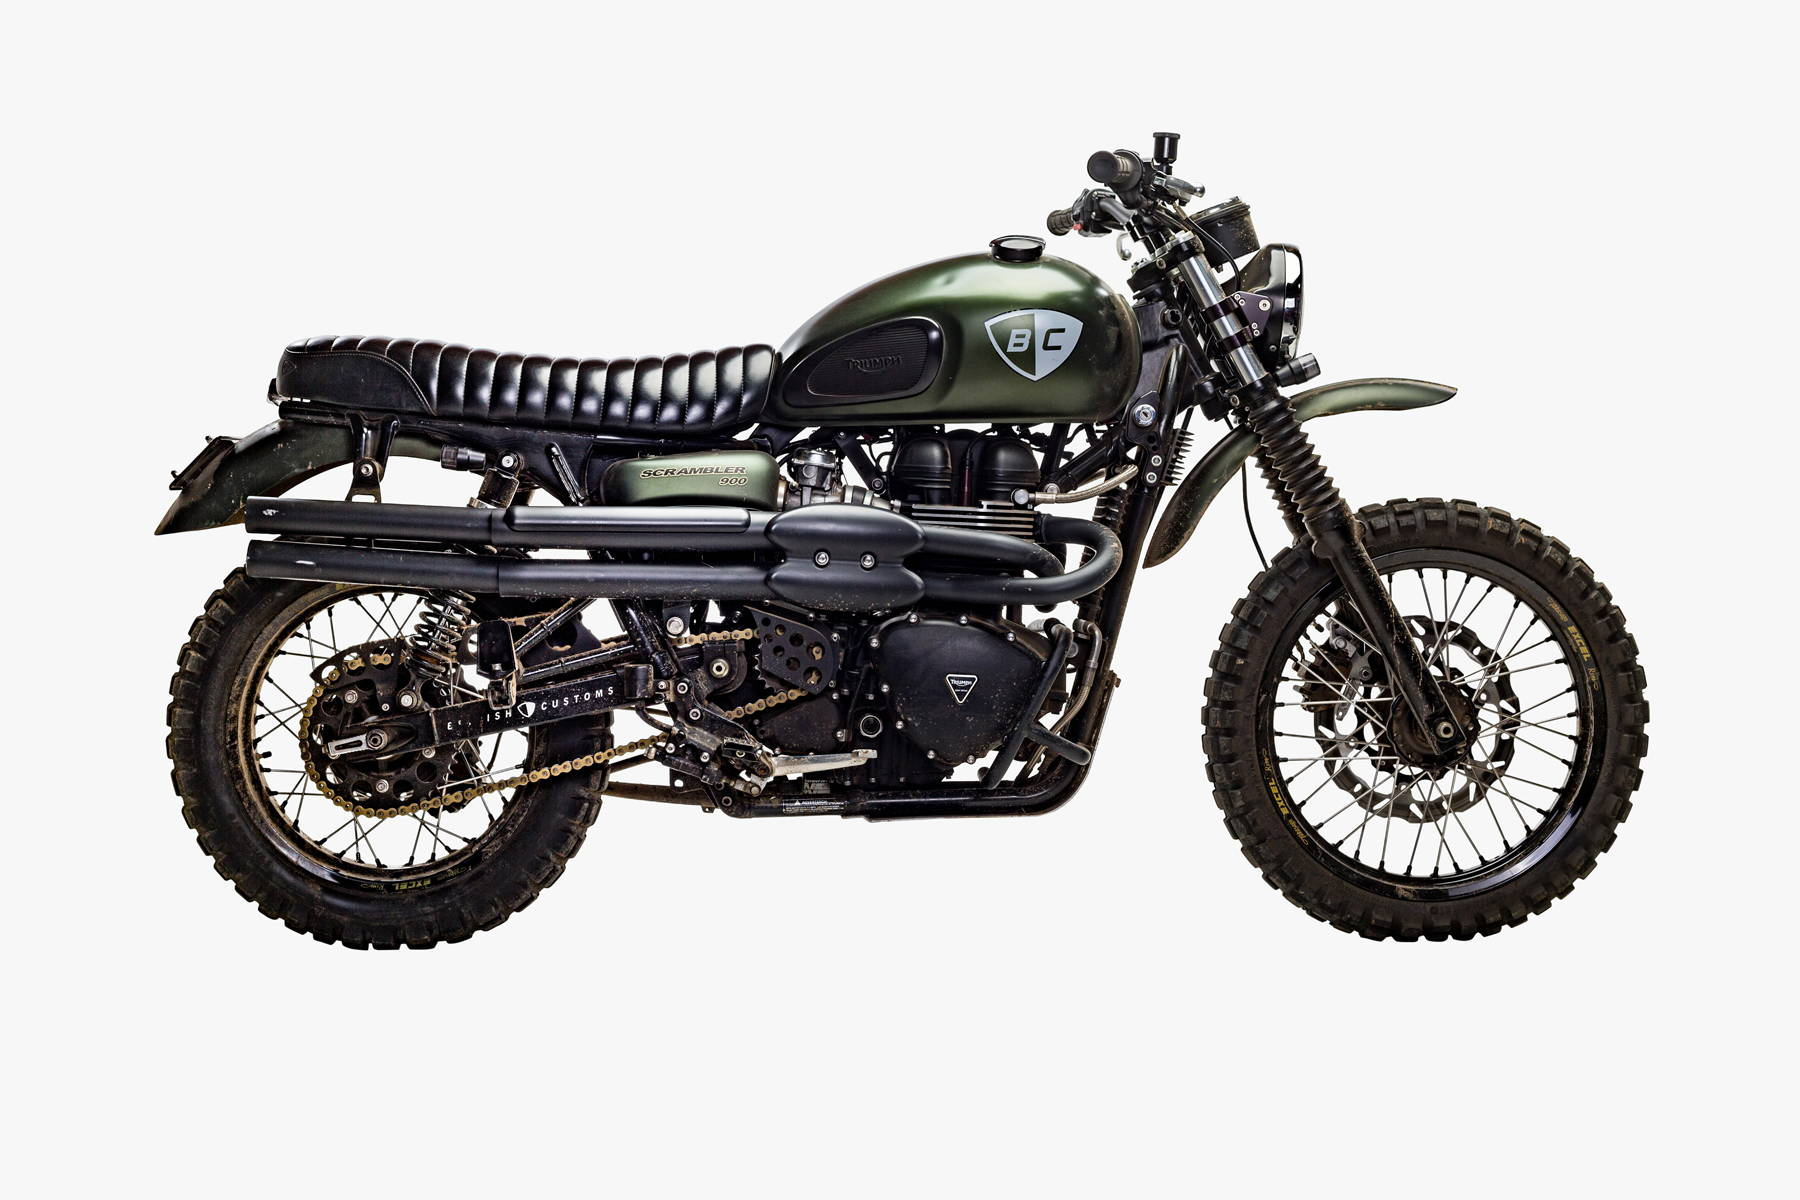 Triumph Scrambler Customized For Roads Trails Adventures And More